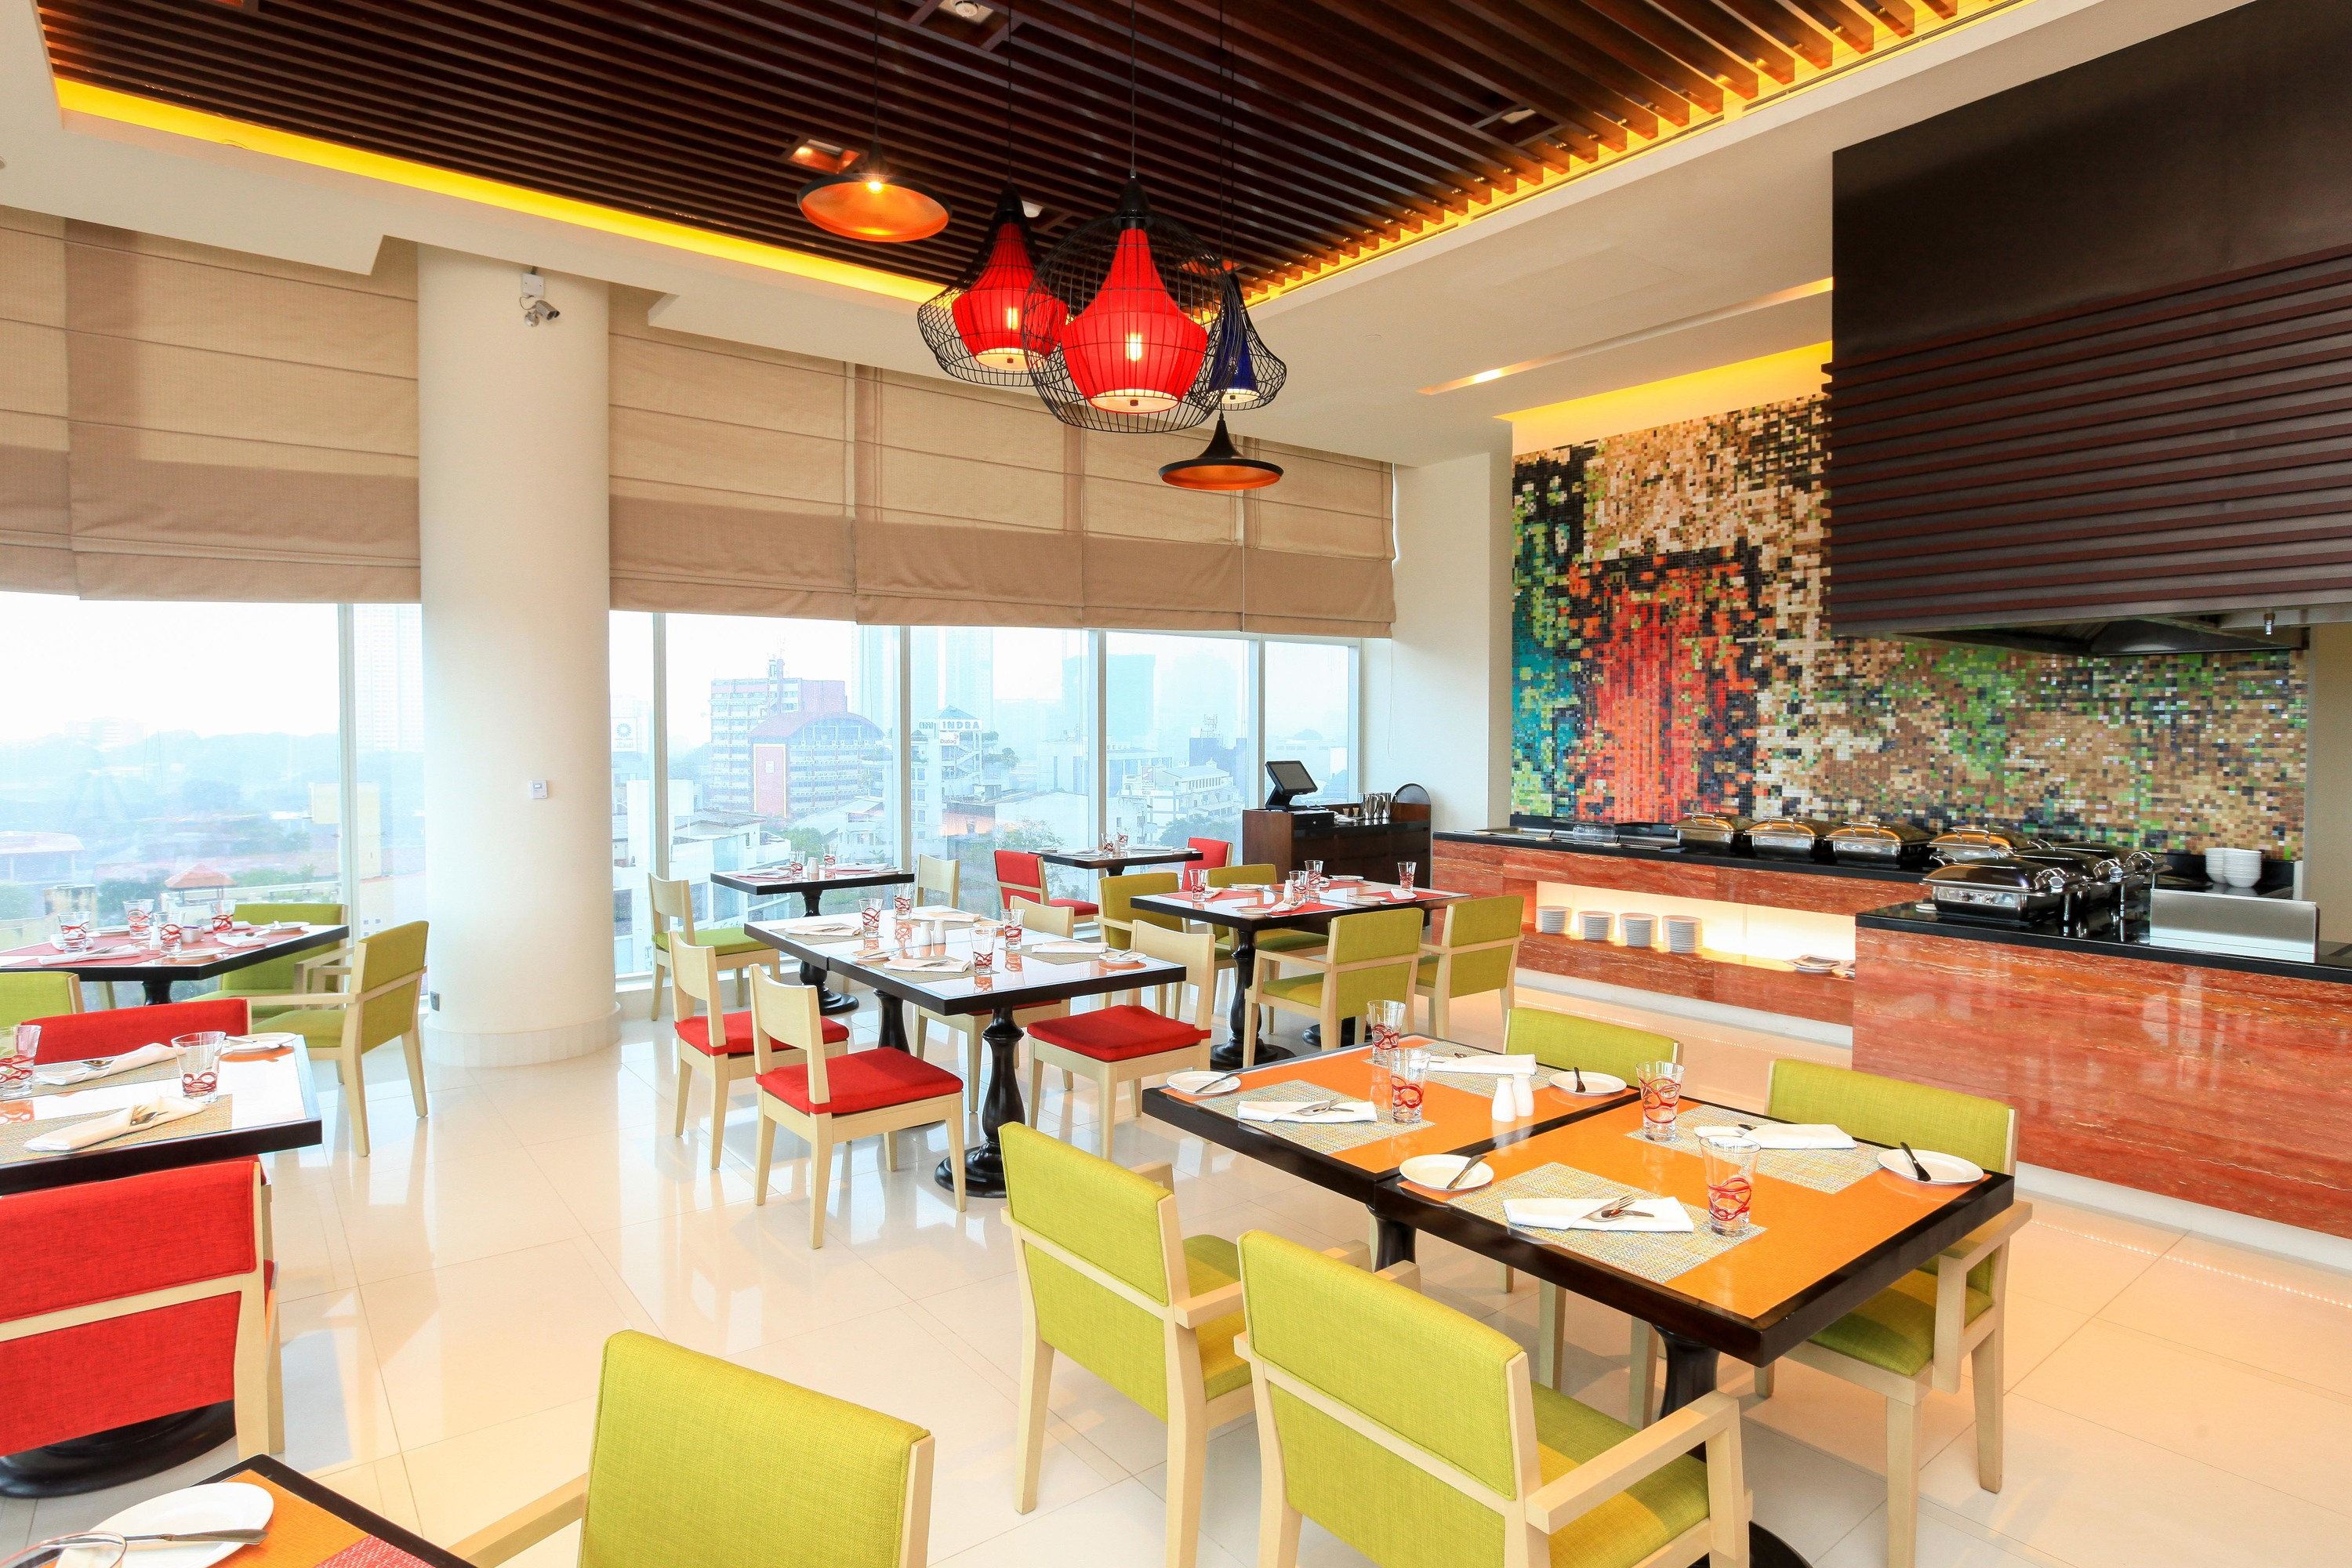 Stirred is a restaurant in Colombo